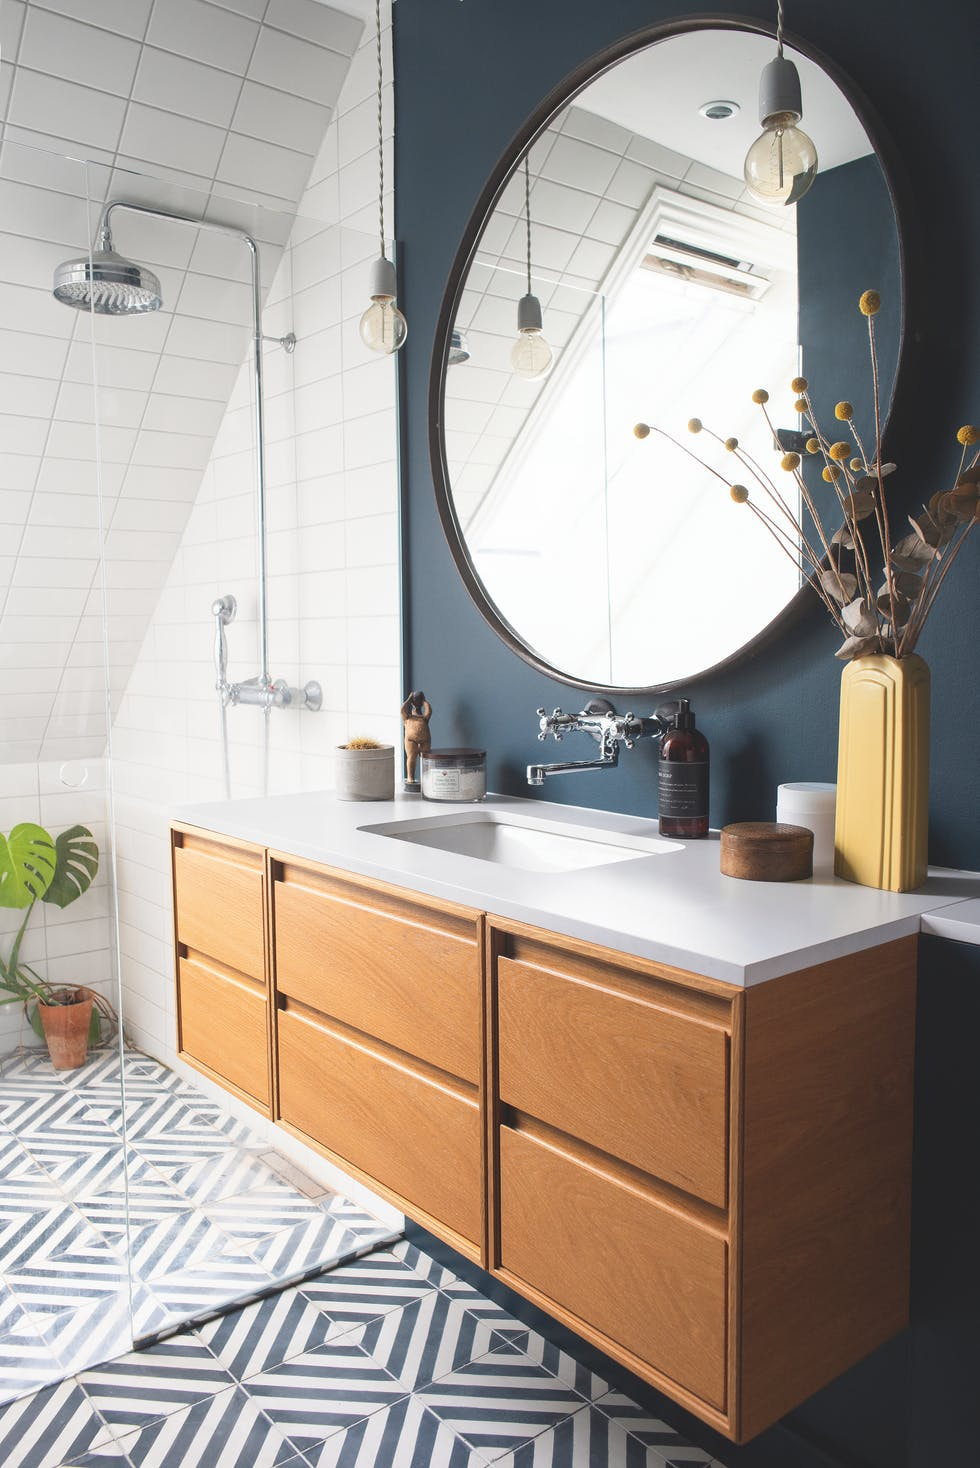 The Nordroom - 25 Inspiring Bathrooms With Geometric Tiles  image: P. Wessel